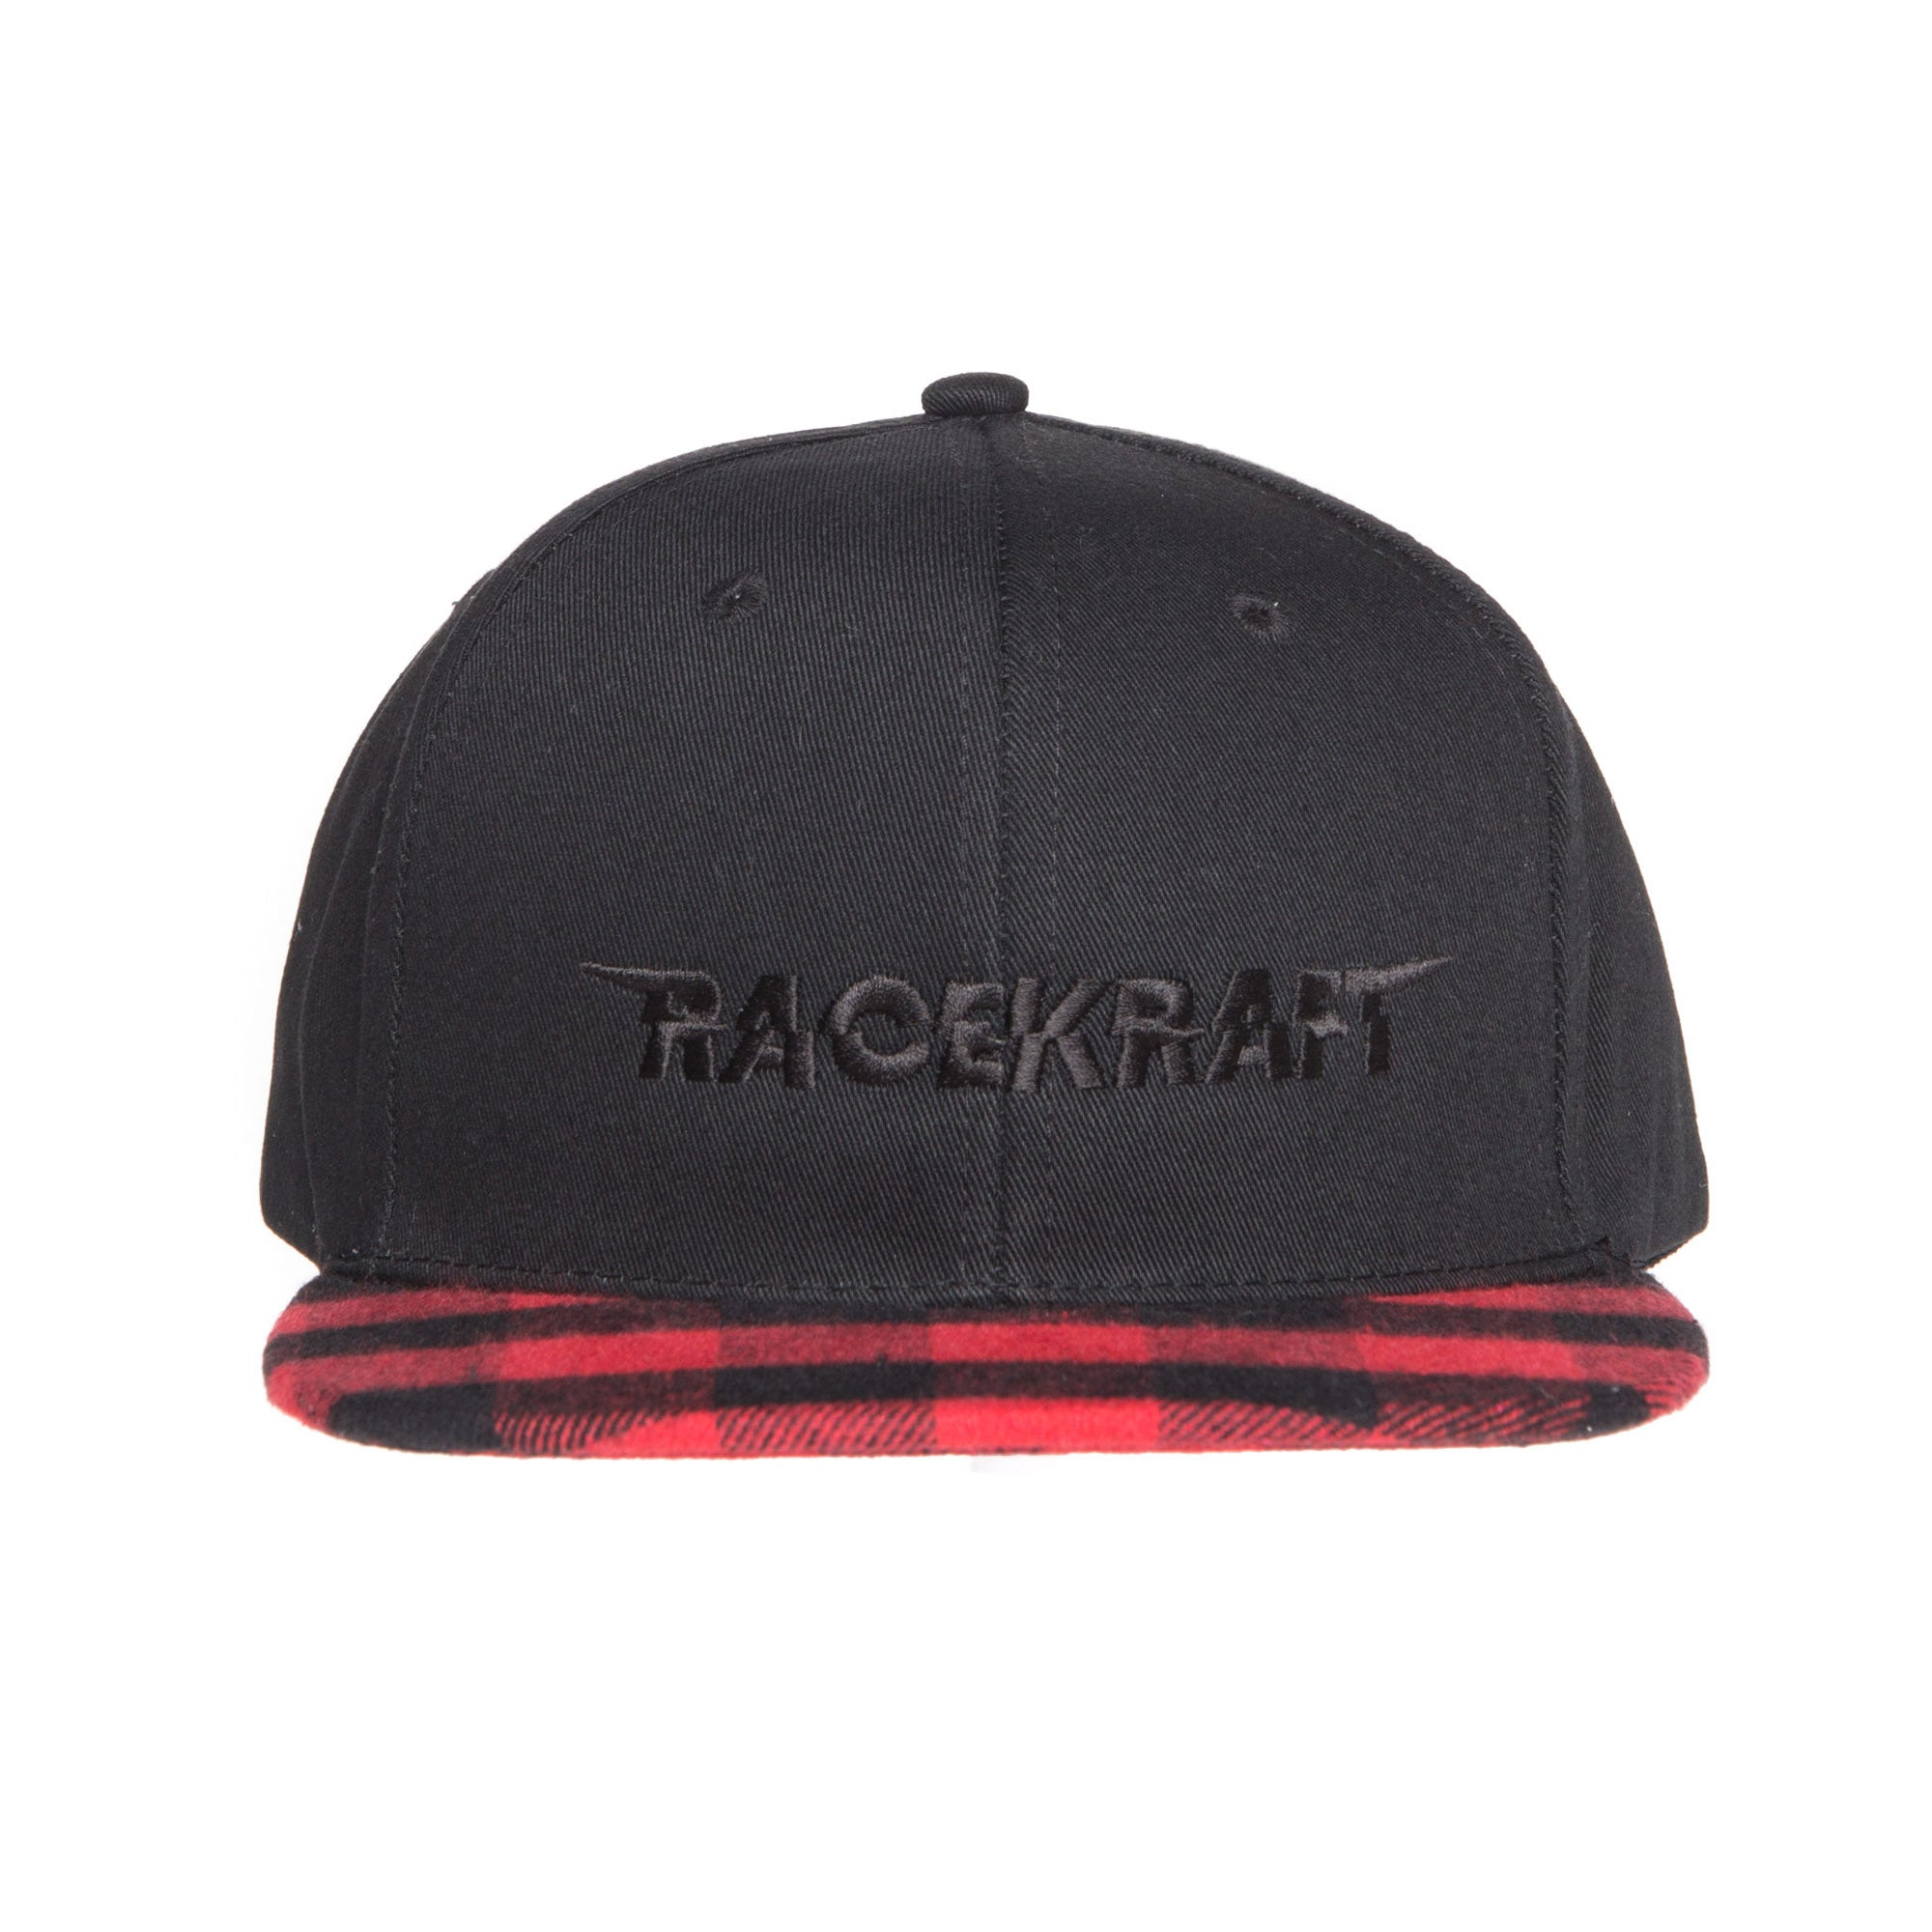 "Red Plaid Wool Flat Bill RaceKraft ""Black RaceKraft"" SnapBack"